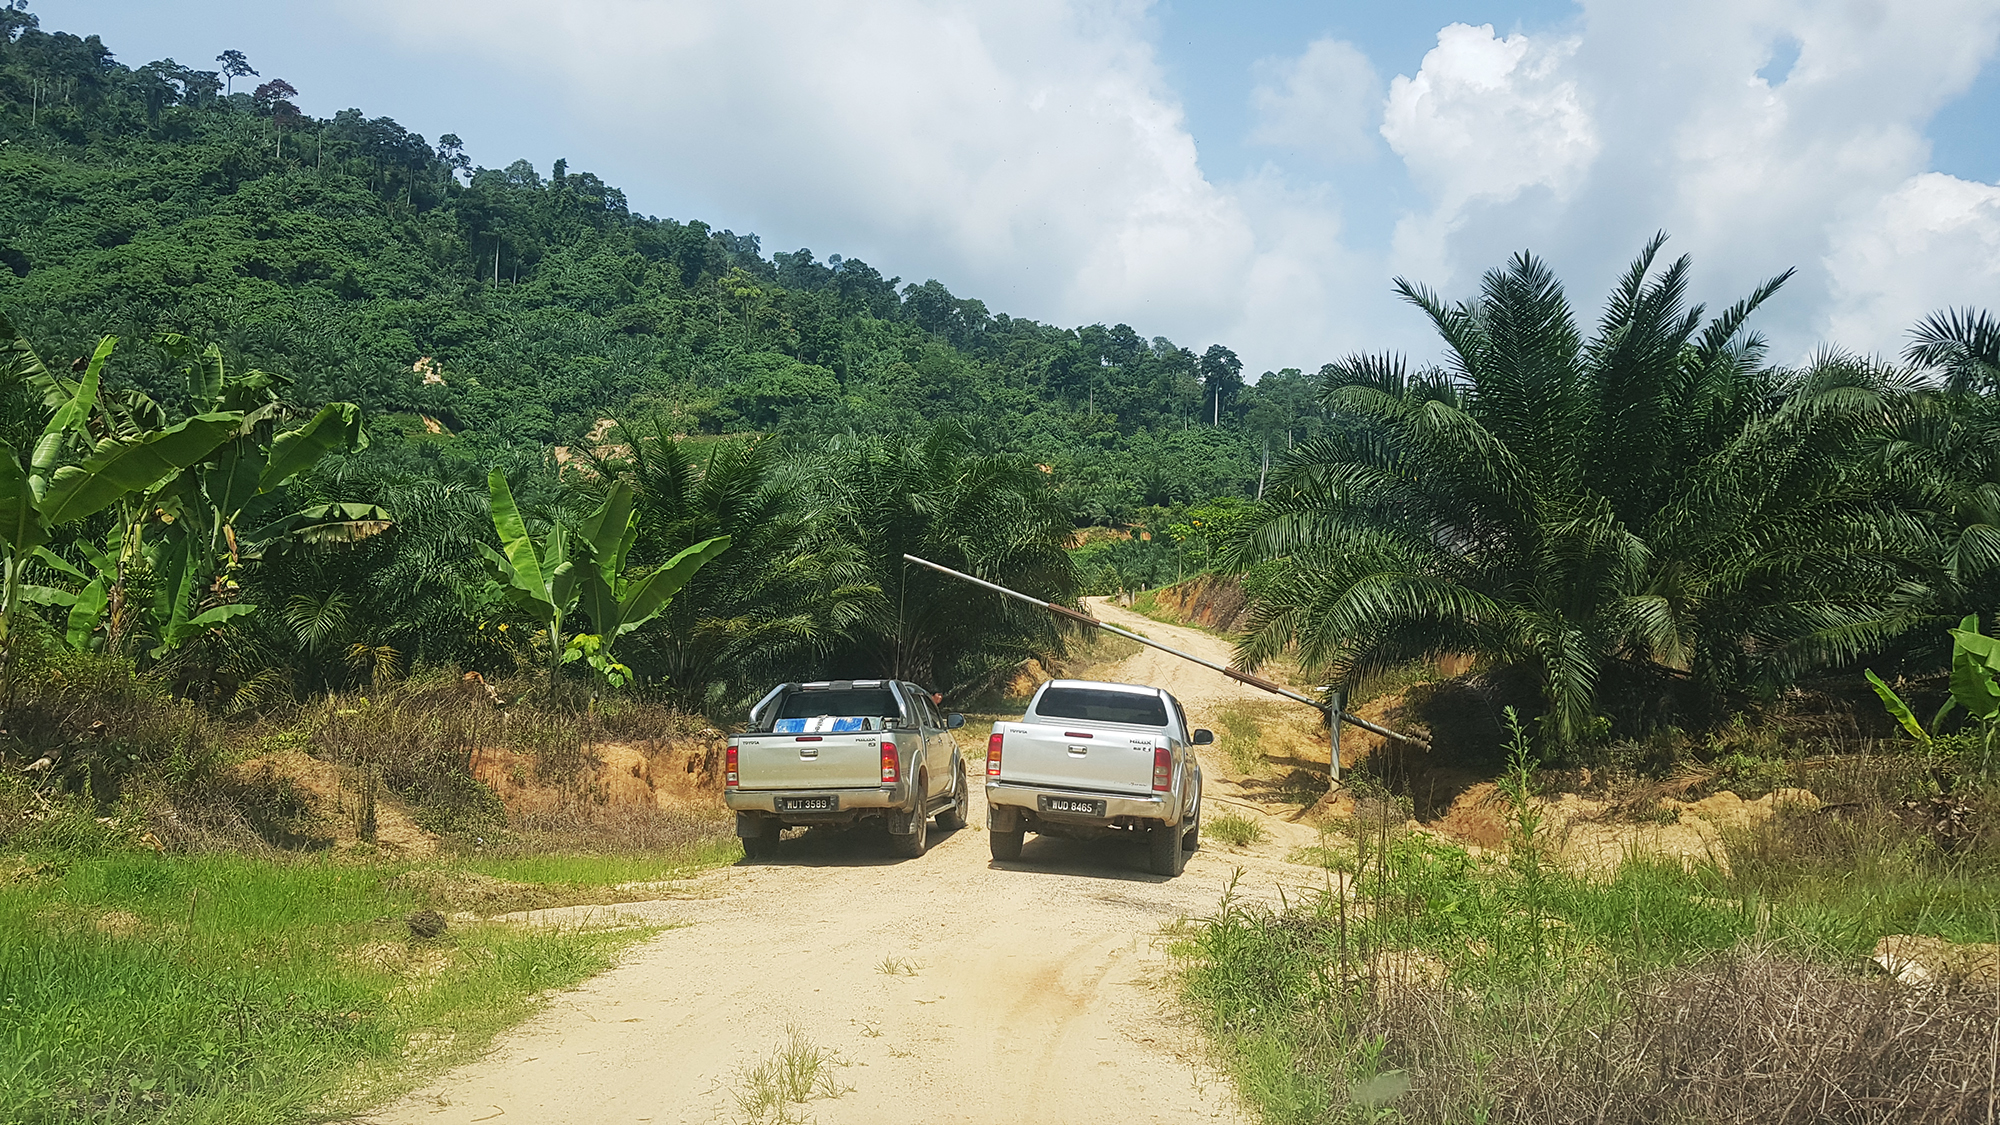 Alternative entrance to 388 acres - 1 lot from main road